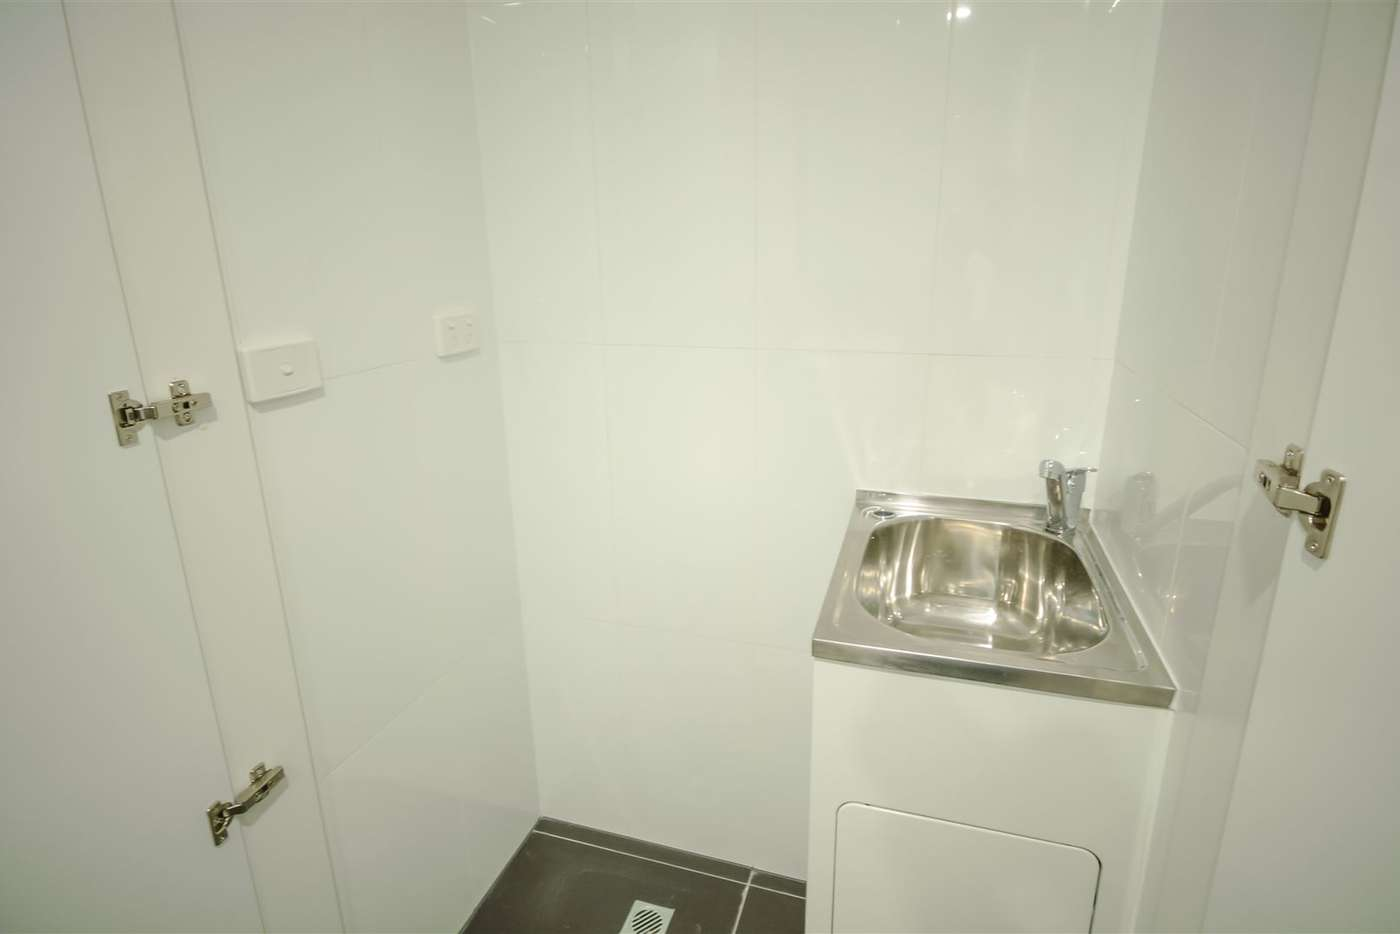 Seventh view of Homely apartment listing, 6/14 Eleanor Street, Footscray VIC 3011